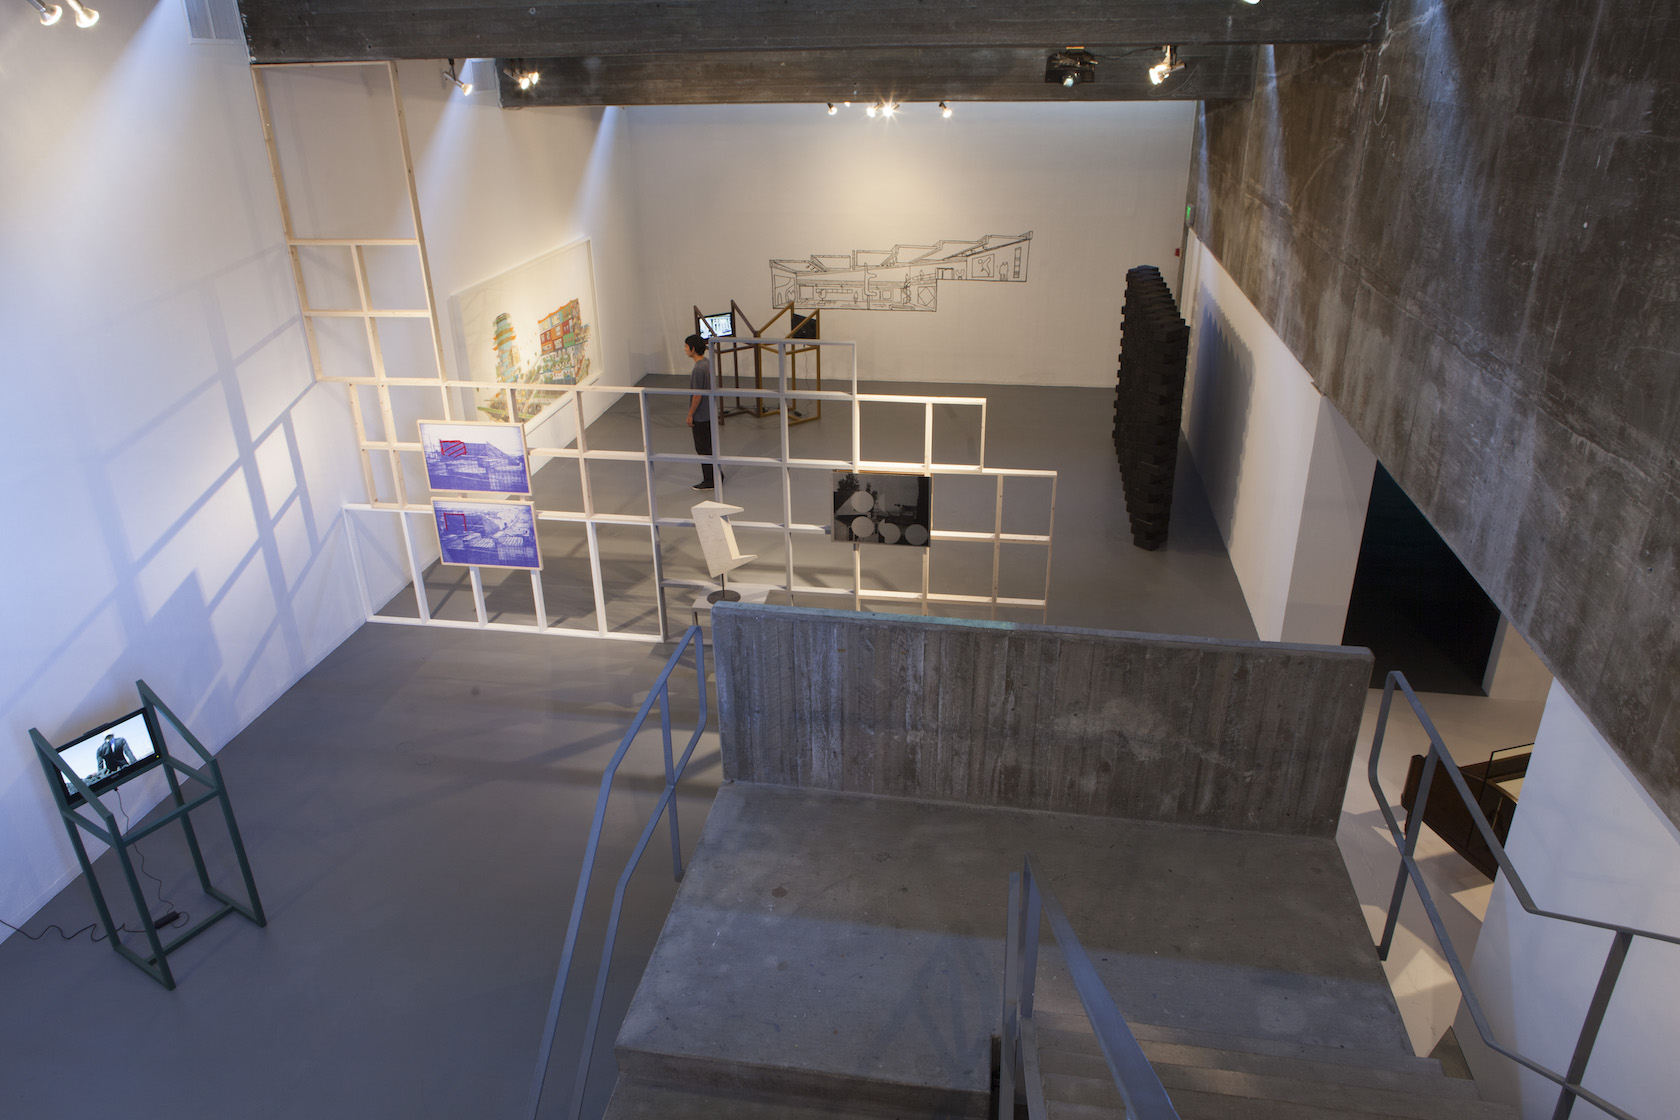 Installation view of  Temporary Structures  at Walter and McBean Galleries, San Francisco Art Institute, September 14 - December 15, 2012.